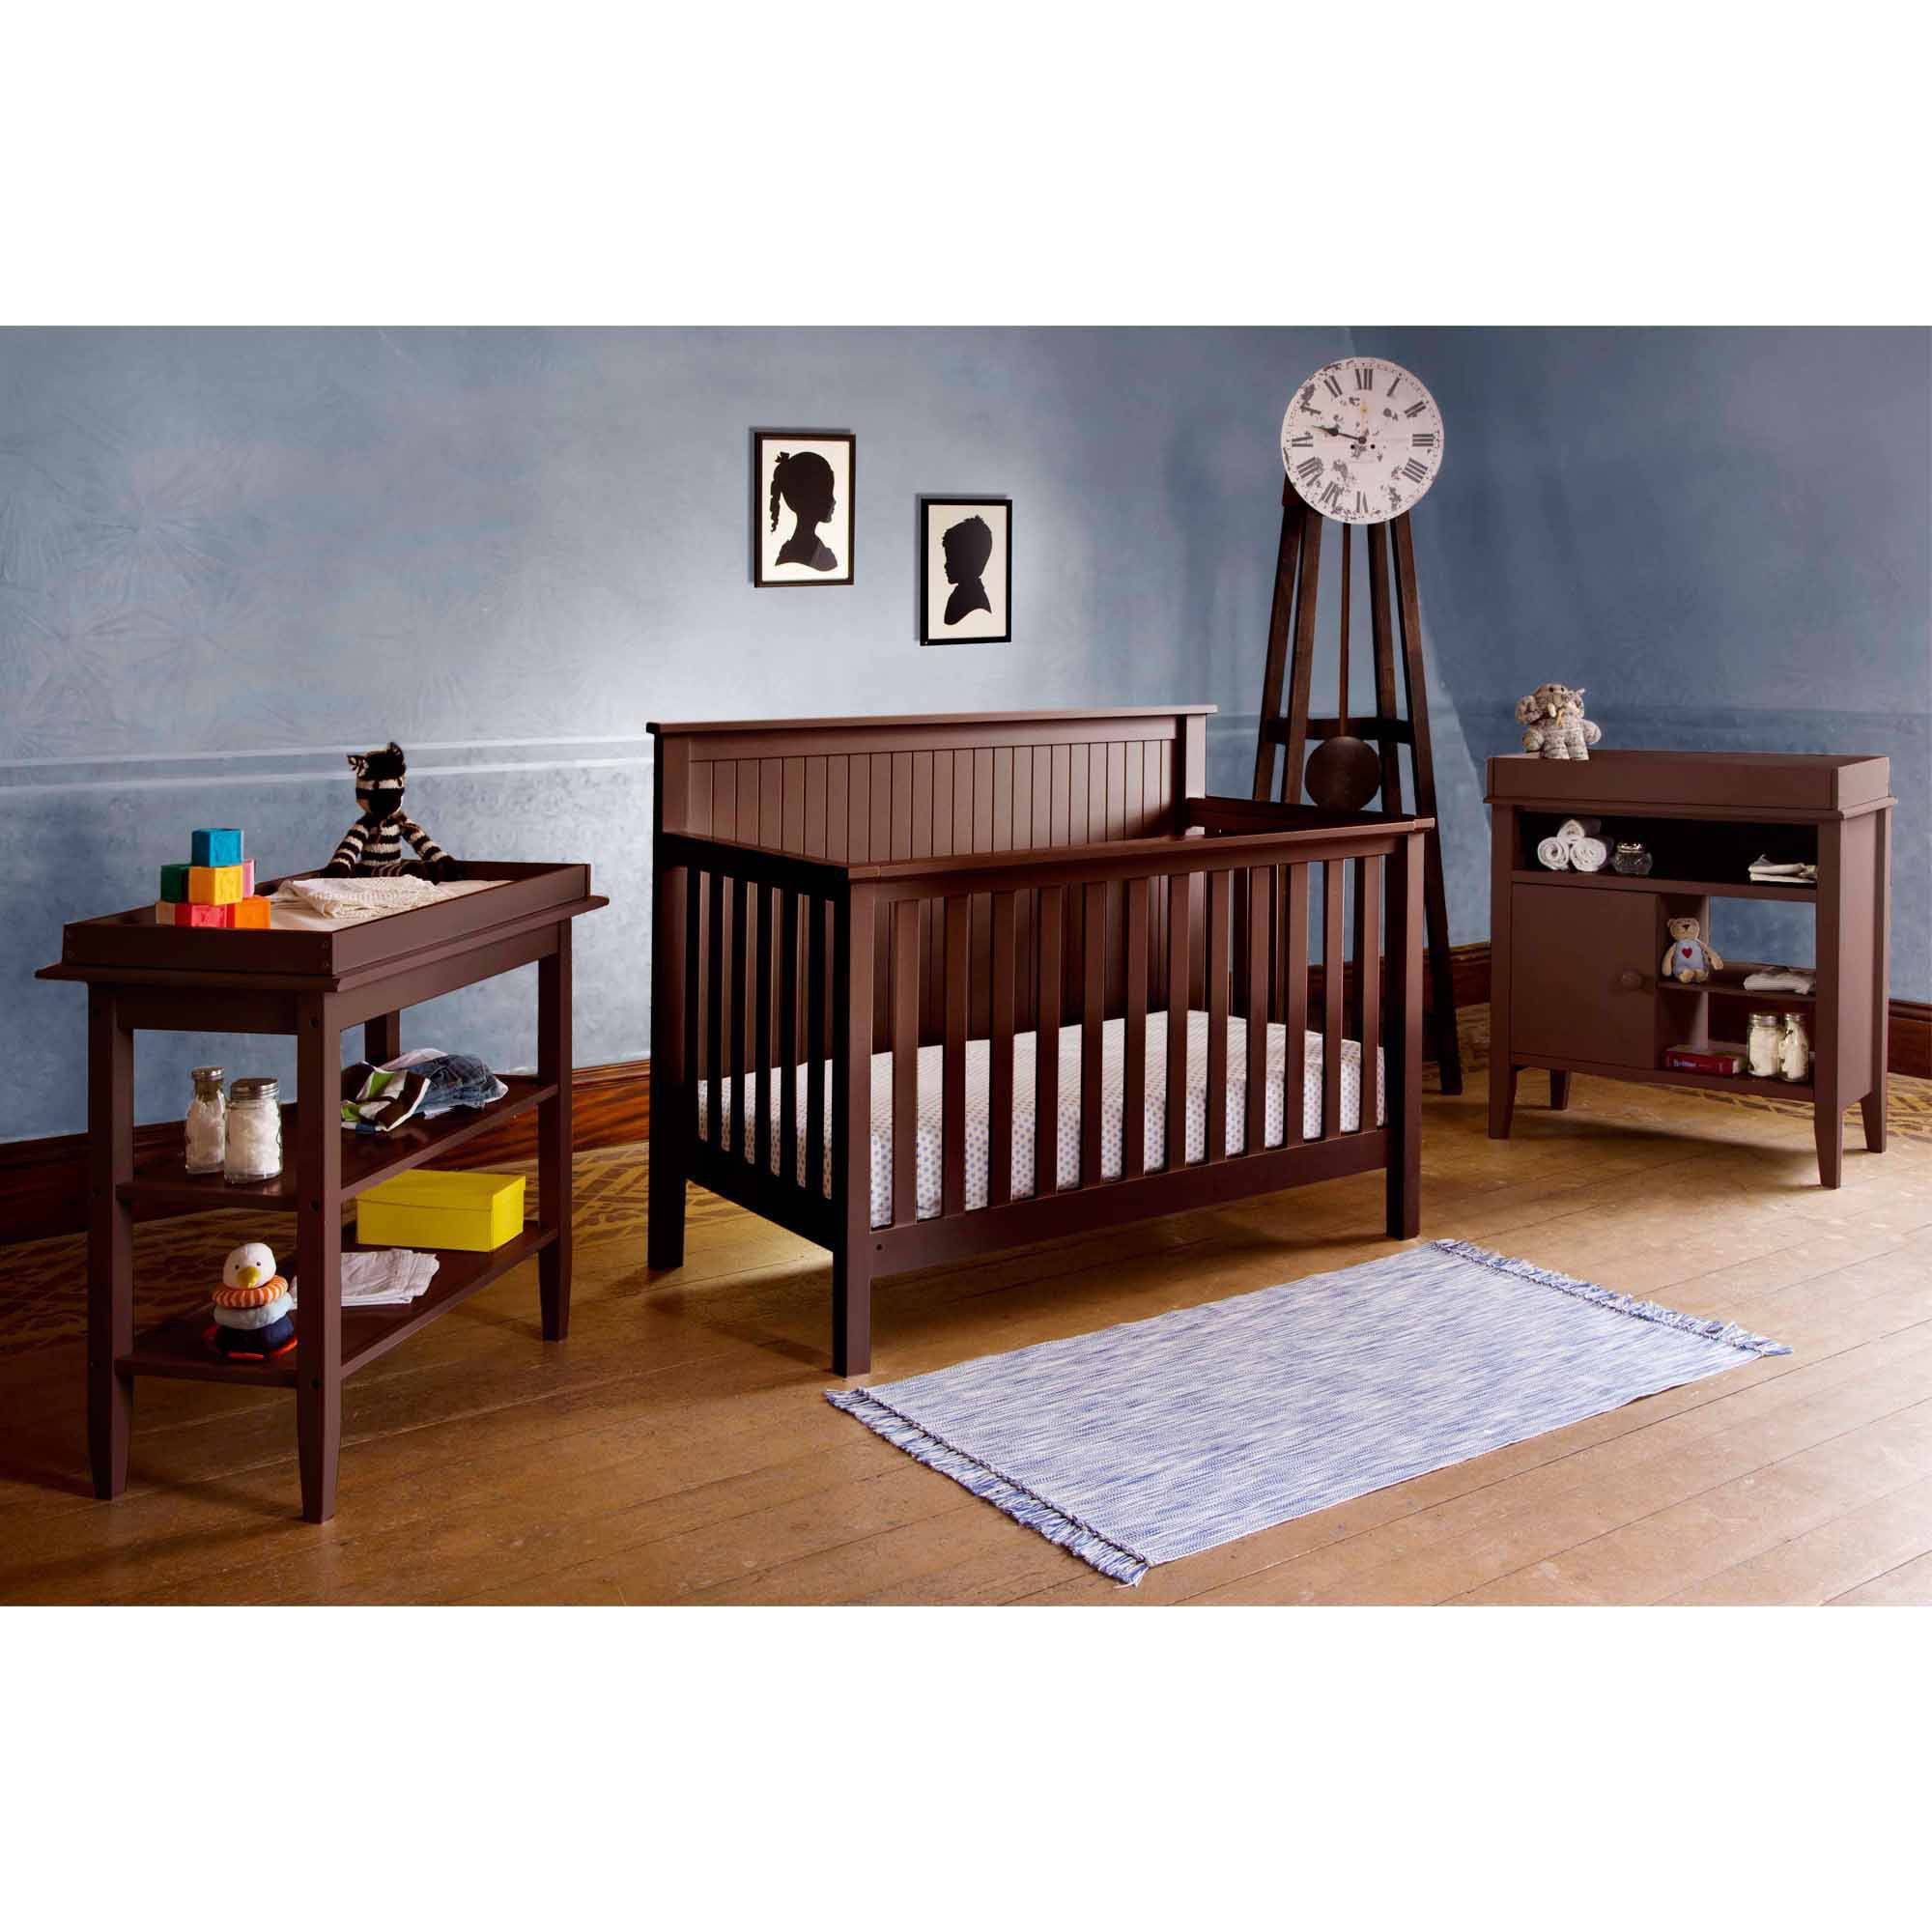 Lolly and Me Americana 4-in-1 Fixed-Side Convertible Crib, Espresso